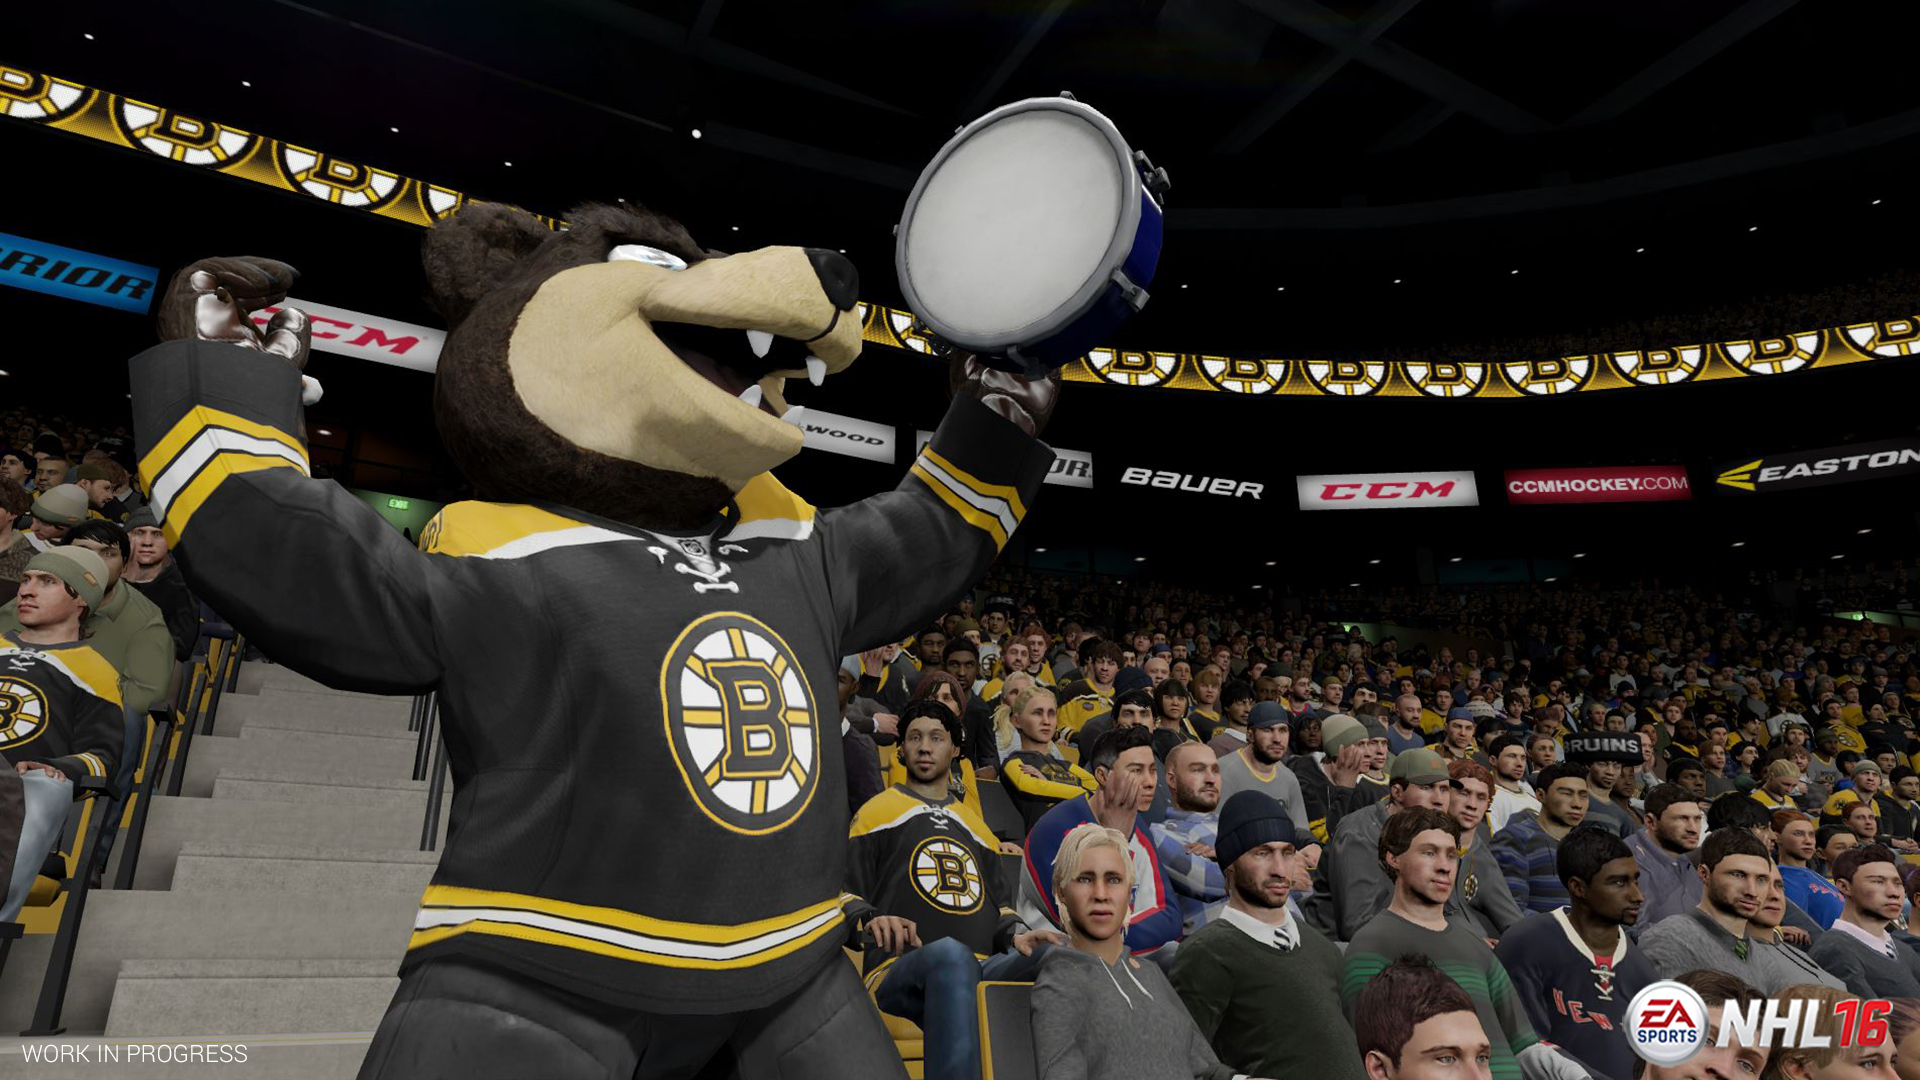 In sports, Xbox 360 and PlayStation 3 already facing elimination games